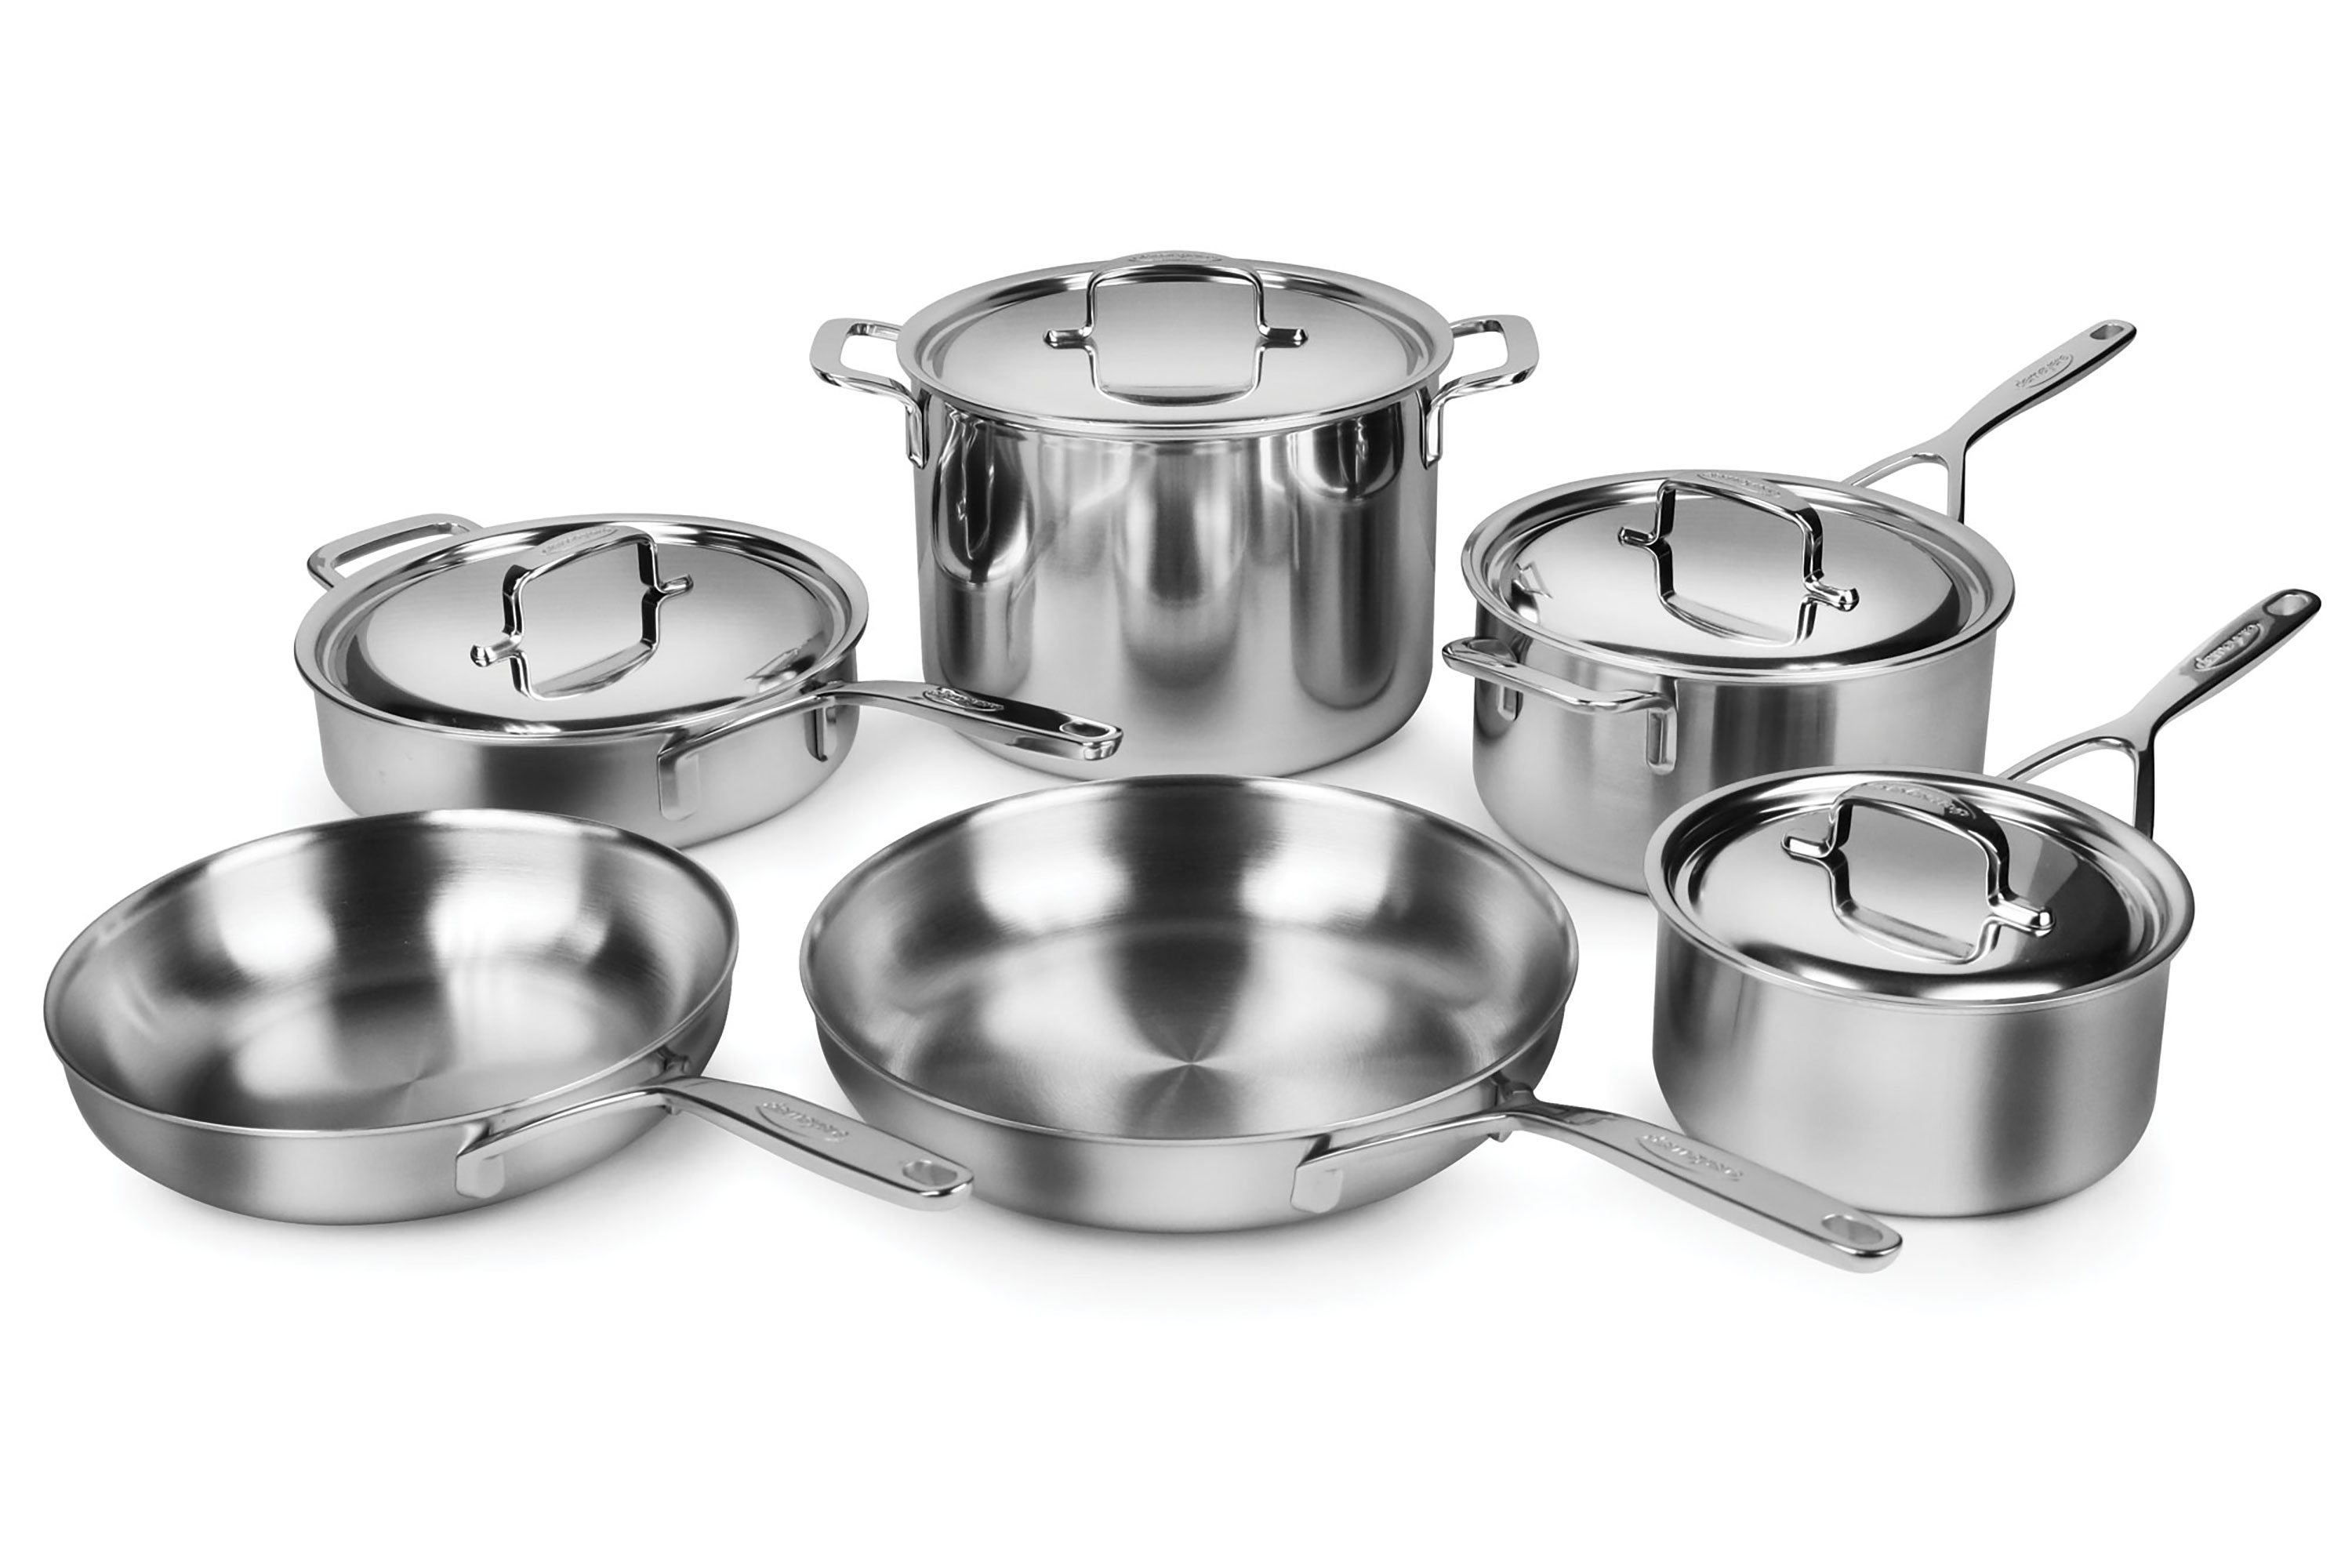 Demeyere 5-Ply Plus Stainless Steel Cookware Set, 10-piece ...